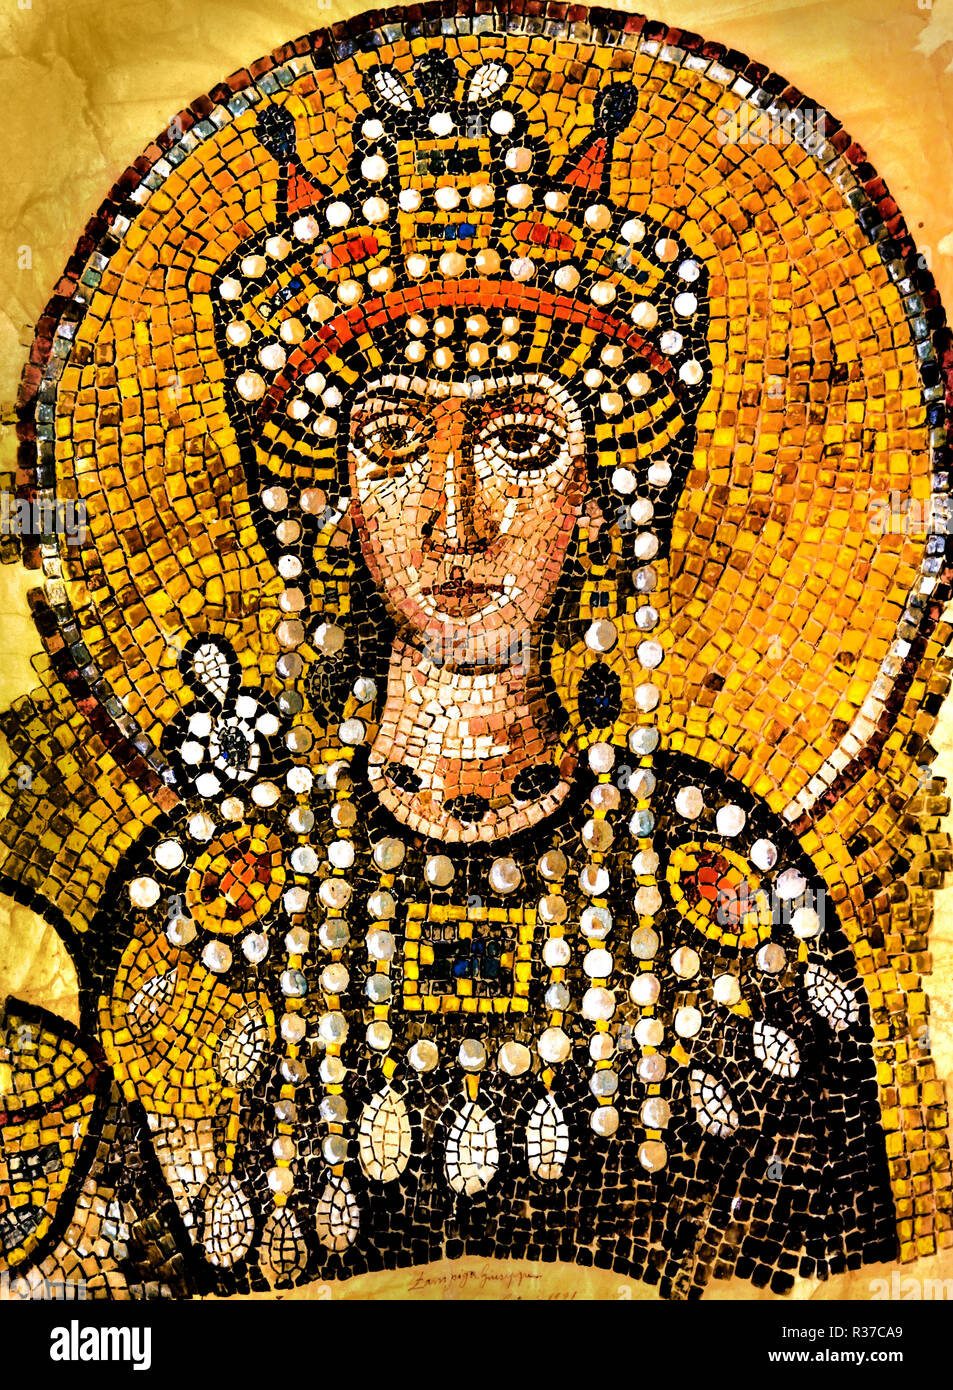 Theodora  500 – 548 Byzantine Empress of the Eastern Roman Empire by marriage to Emperor Justinian I.   She was a champion of women's rights.  She had laws passed which prohibited the trafficking of young girls and changed existing laws impacting divorce to give more benefits to women. - Stock Image